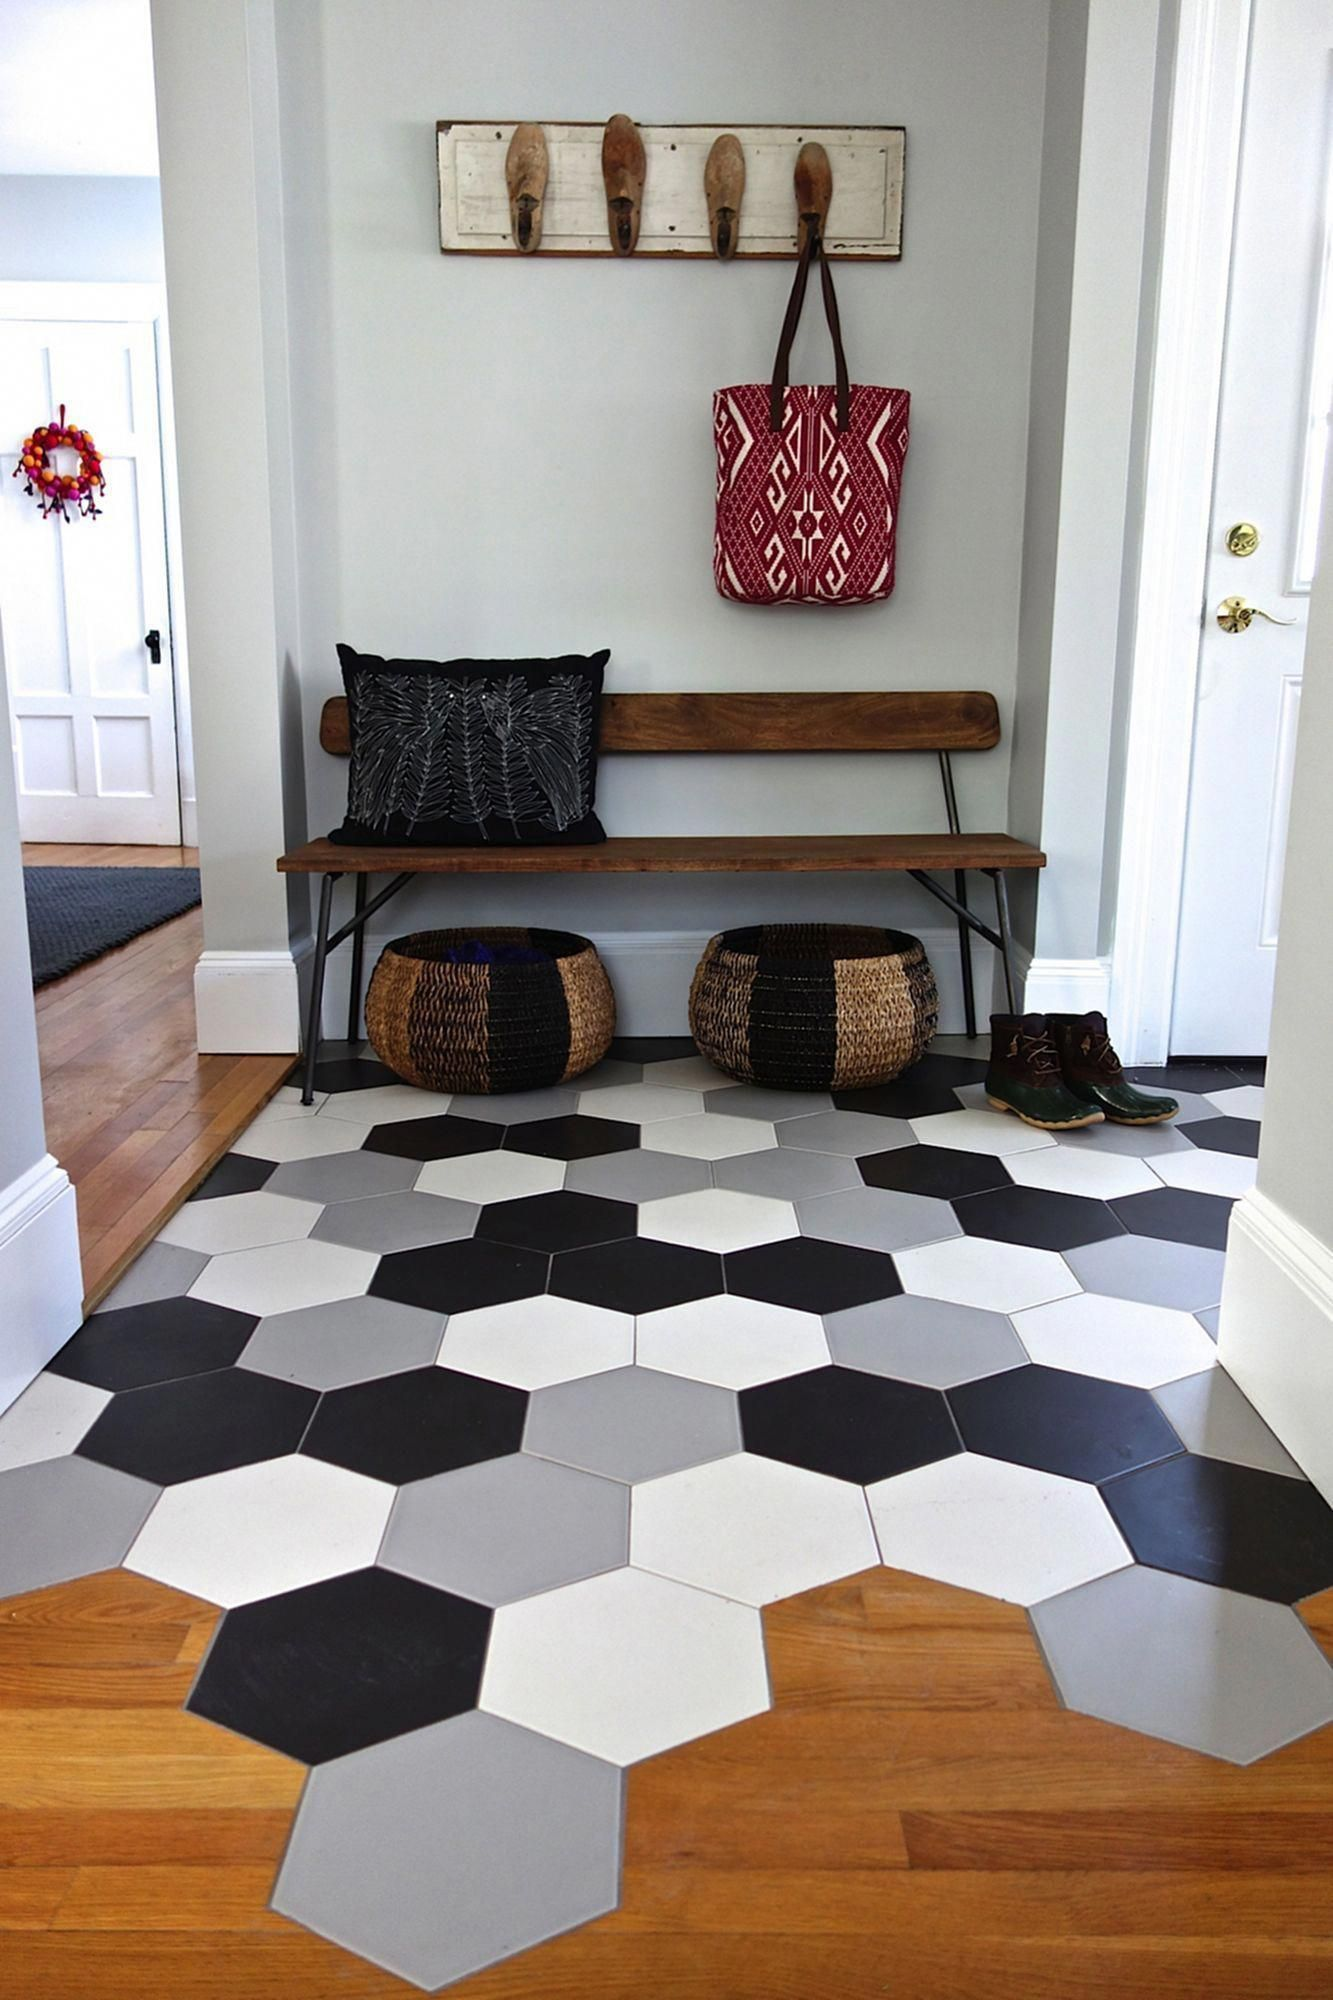 Breathtaking Vinyl Wood Flooring Read Our Post For Lots More Creative Concepts Breathtaking Conc In 2020 Inexpensive Flooring Stylish Flooring Wood Floor Kitchen